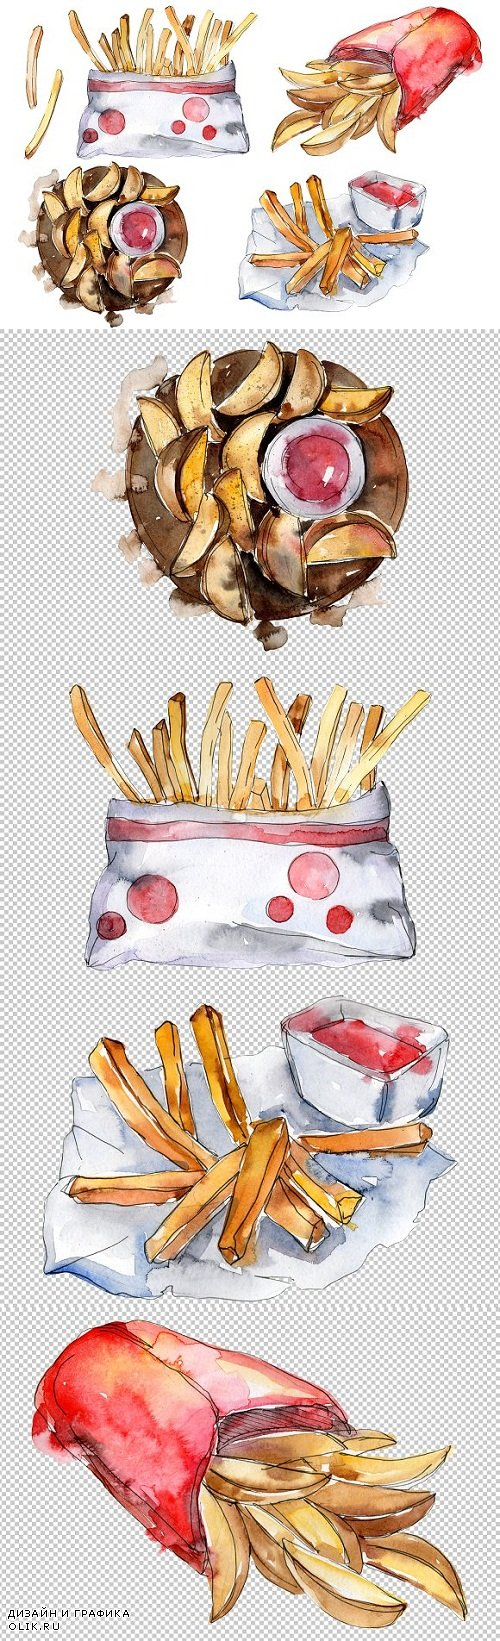 French fries with sauce Watercolor  - 3476828